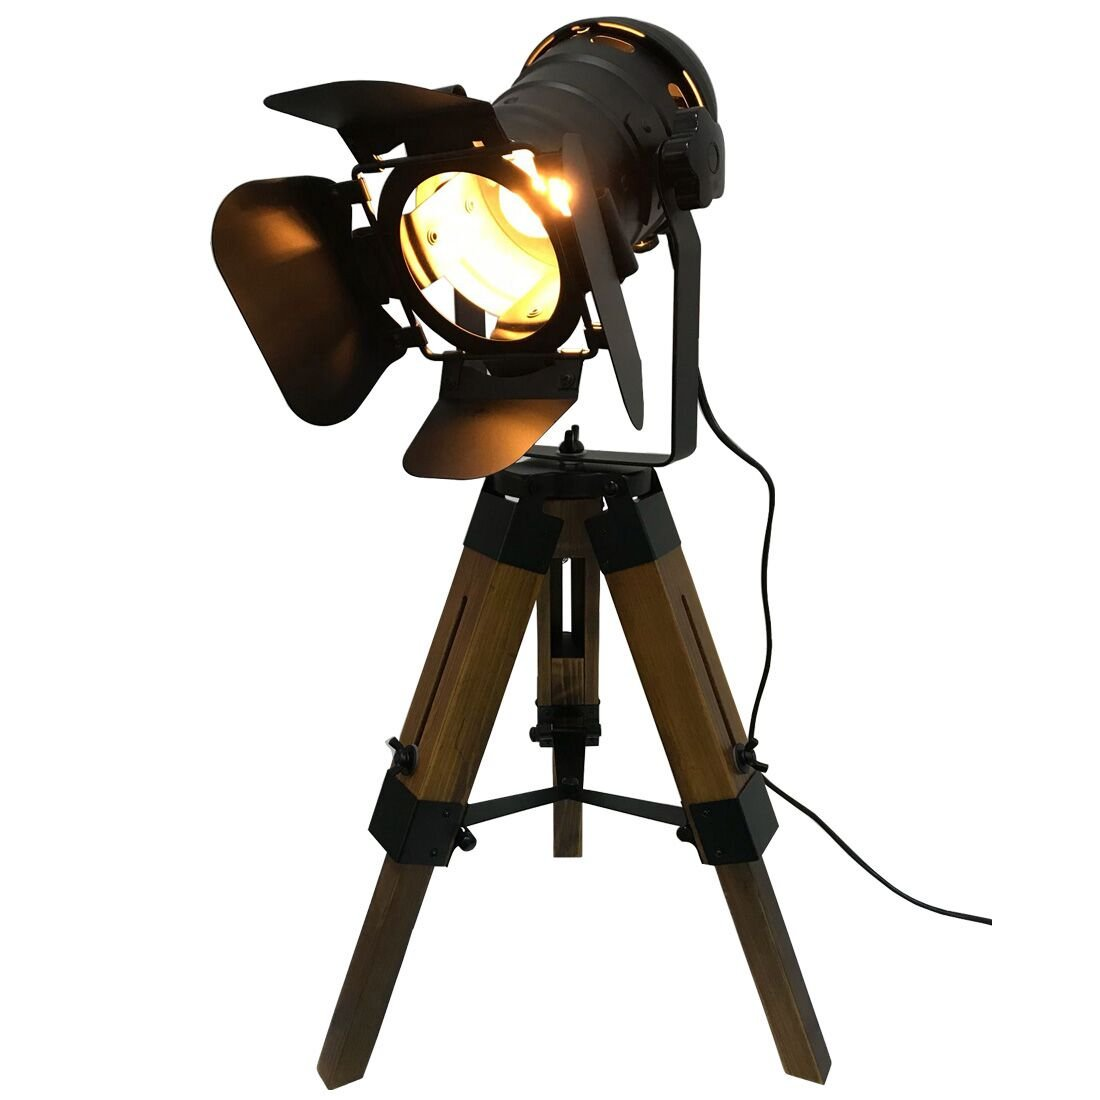 Decoluce Vintage Adjustable Cinema Table Lamp - Nautical Black Retro Style Tripod Spotlights Searchlights Wooden Tripod Floor Lamp Cinema Movie Props-Not Include E26 Bulbs (Cinema)